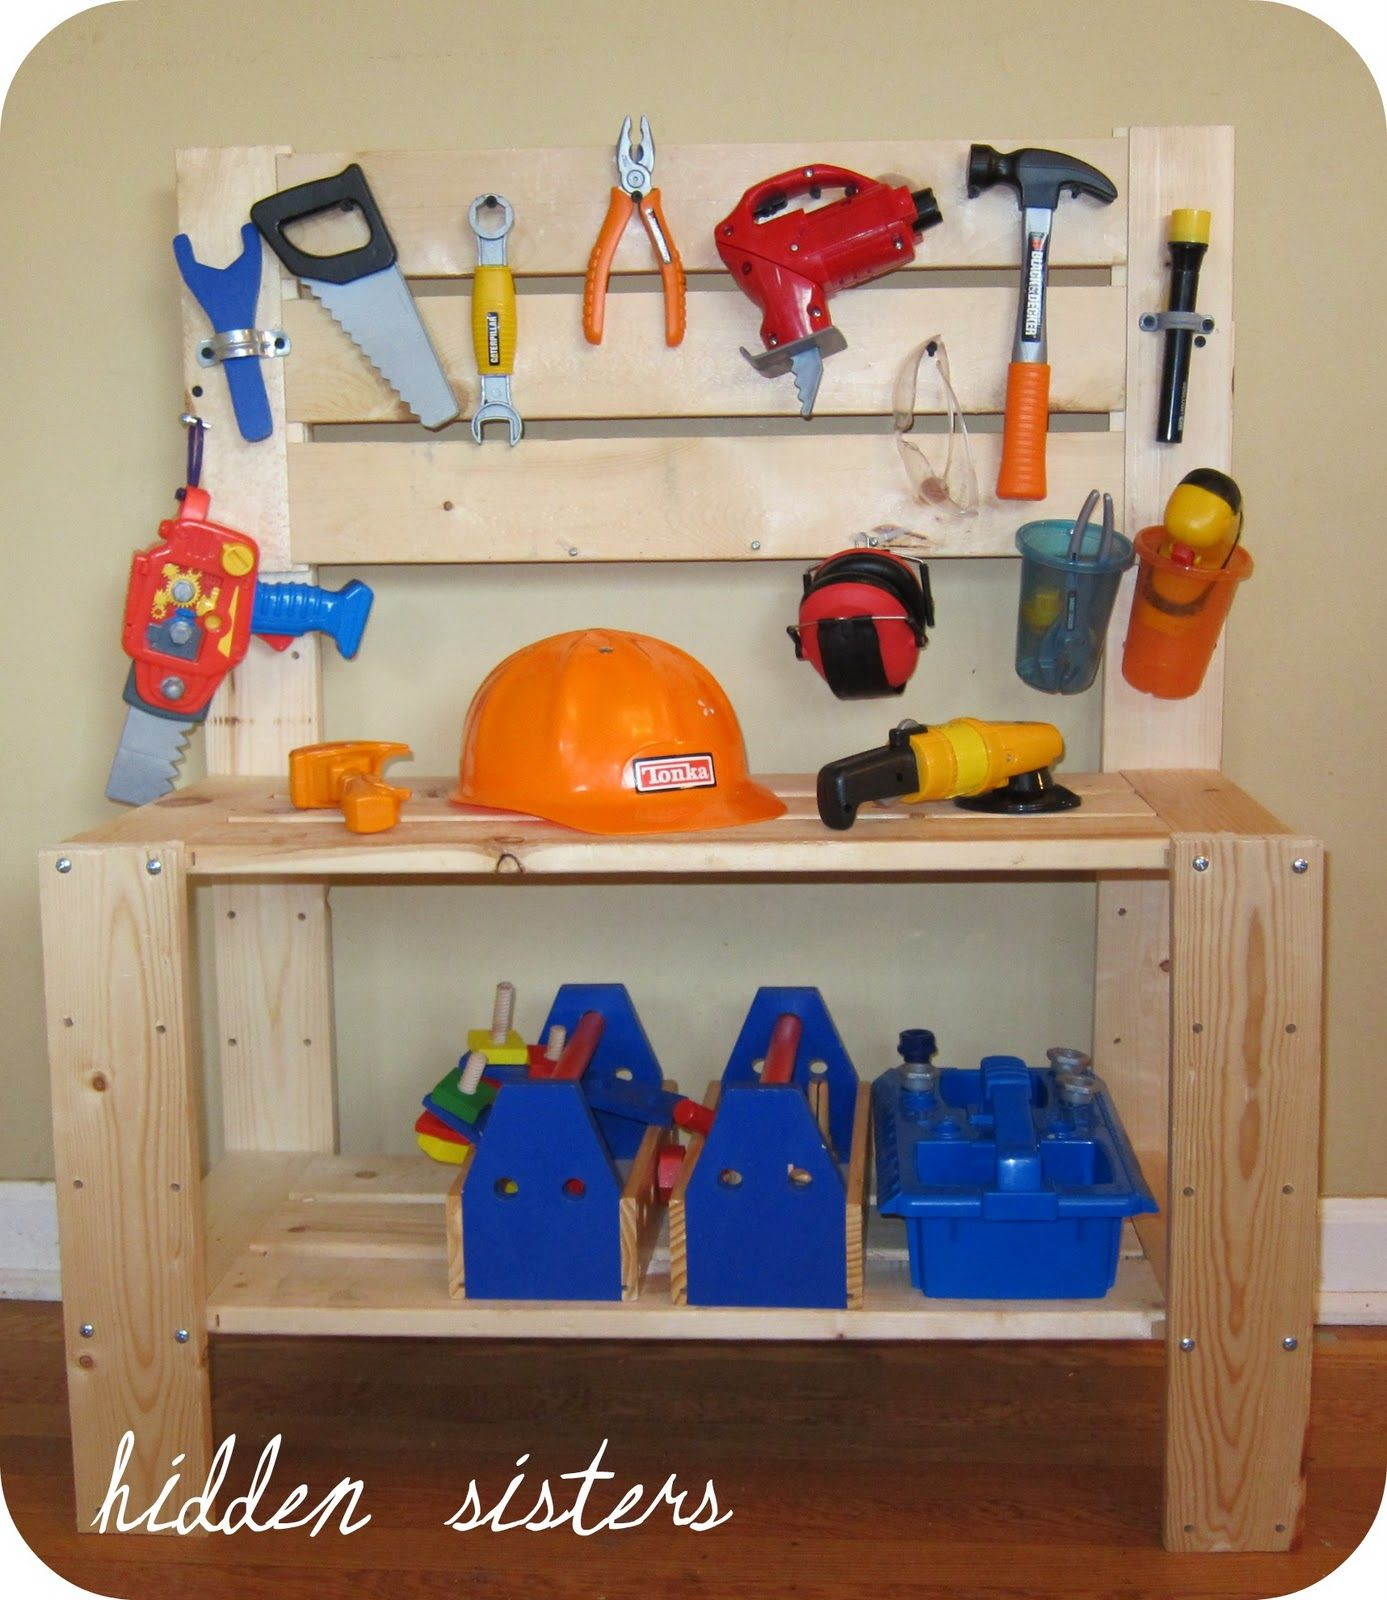 Hidden Sisters Diy Inspiration A Children S Tool Bench Christmas Gifts For Boys Tool Bench Diy For Kids